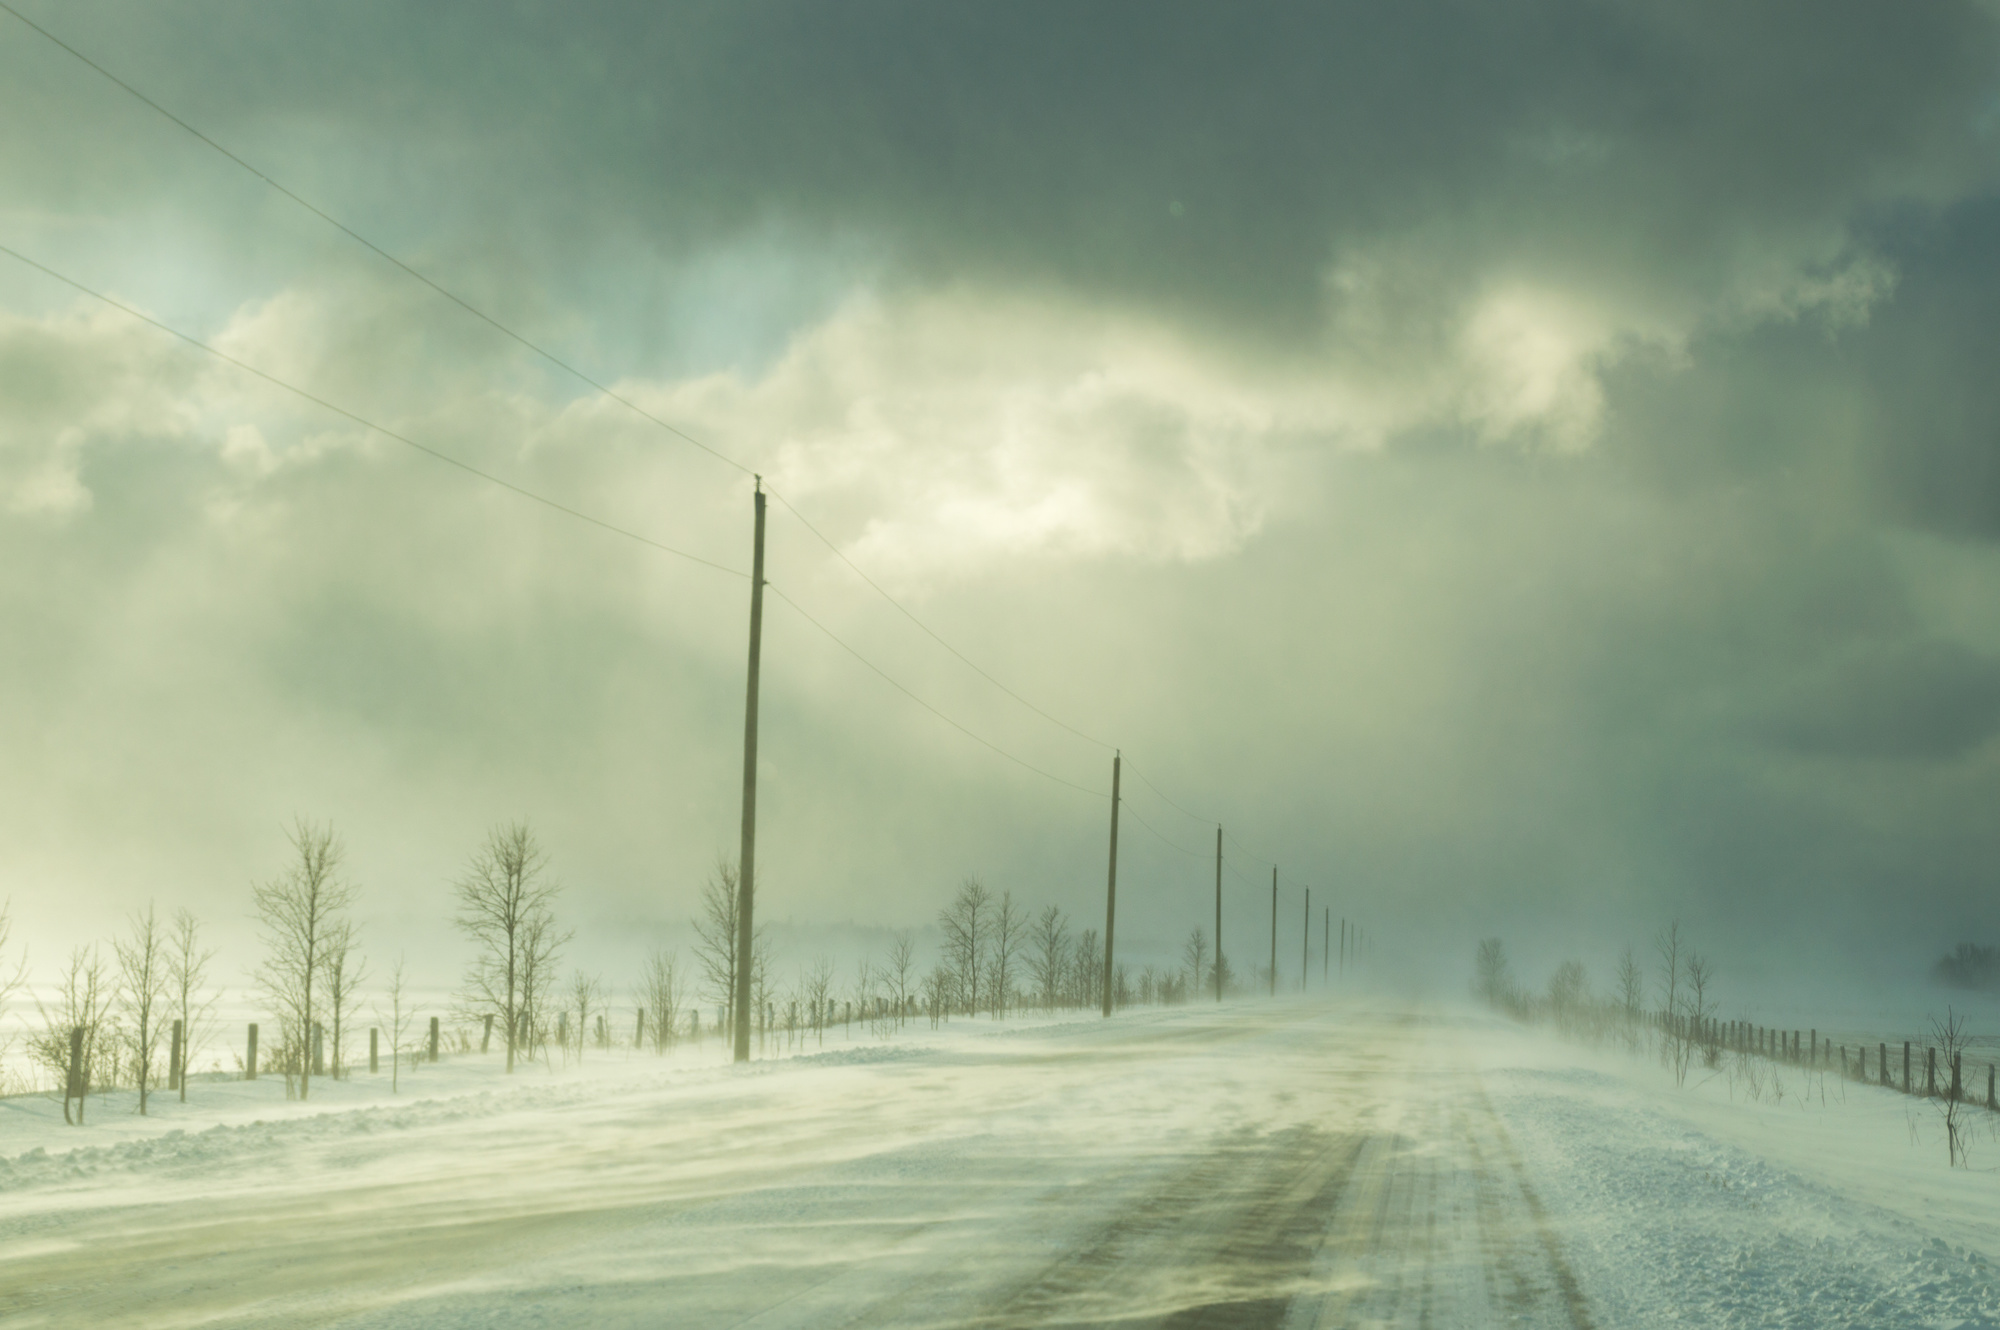 Snow squall warning in effect: Environment Canada